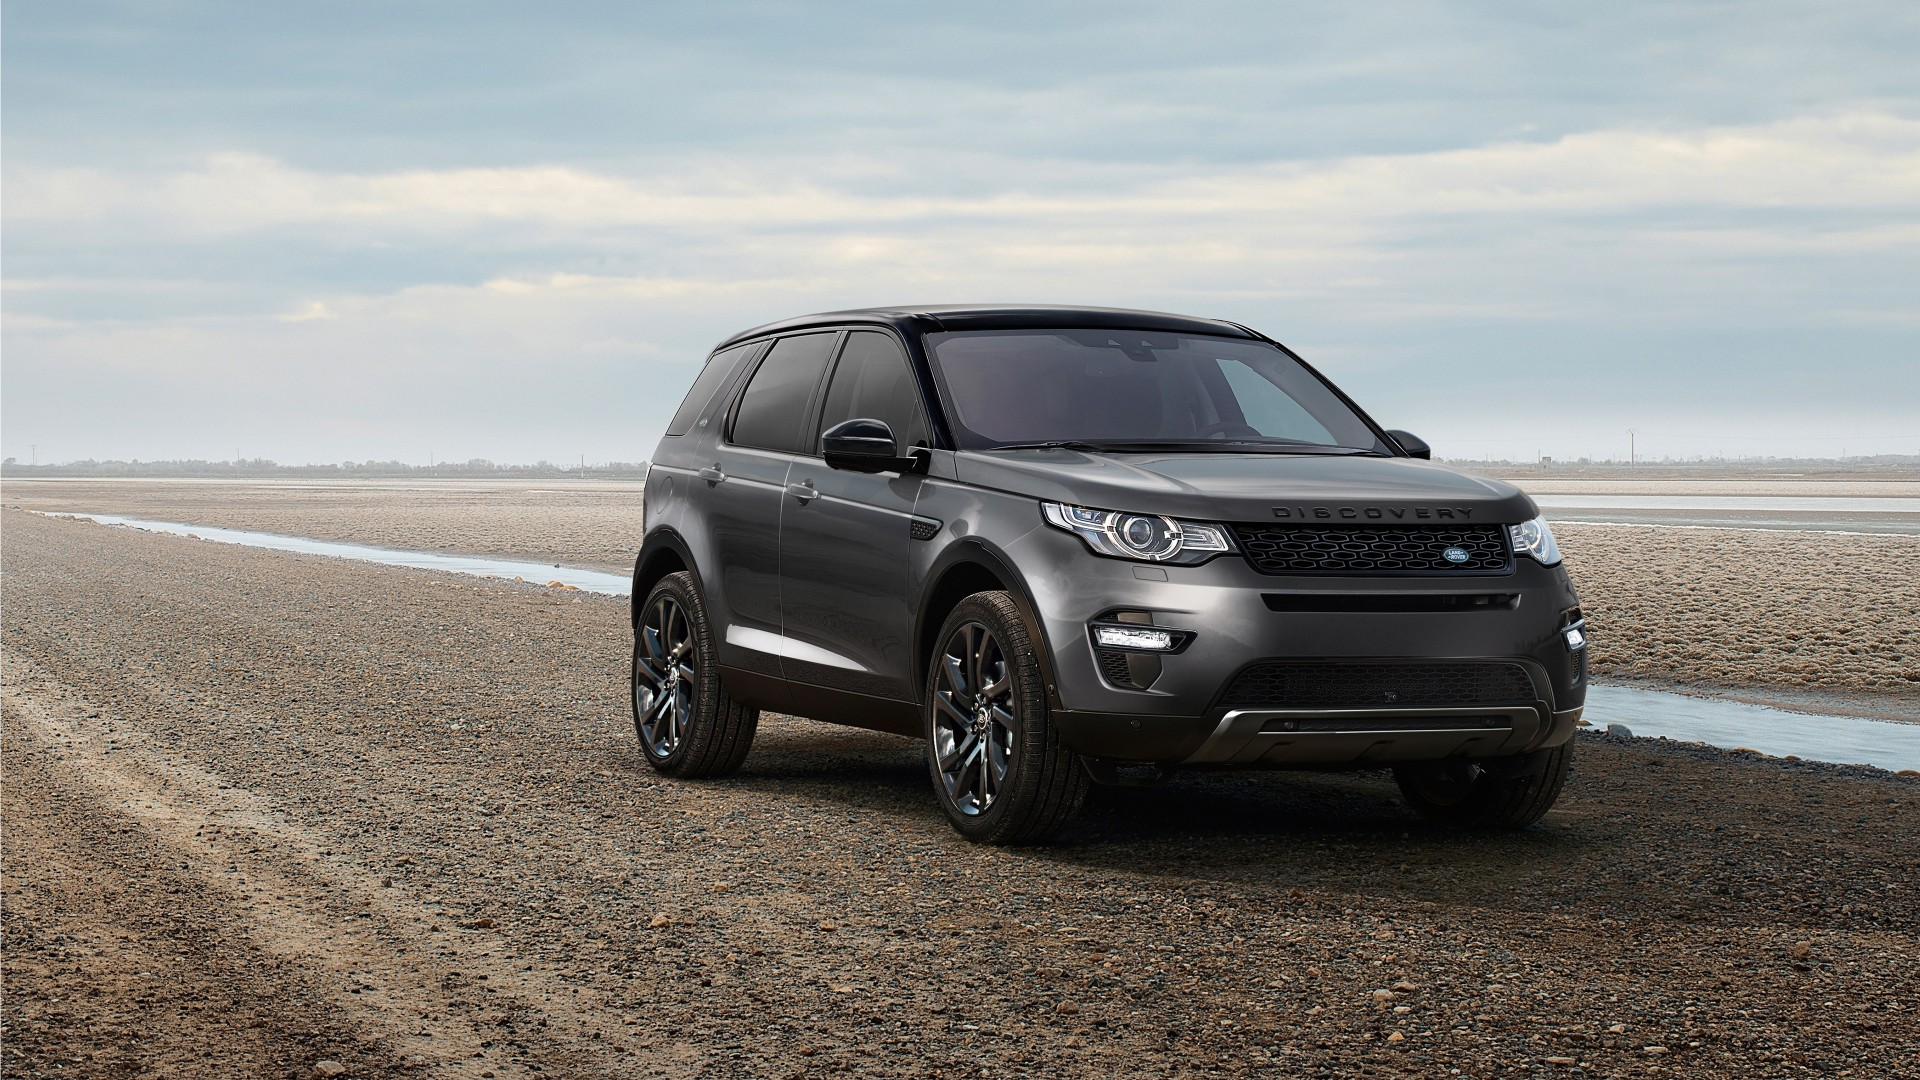 7 Seater Suv 2017 >> 2017 Land Rover Discovery Sport 4K Wallpaper | HD Car Wallpapers | ID #6862